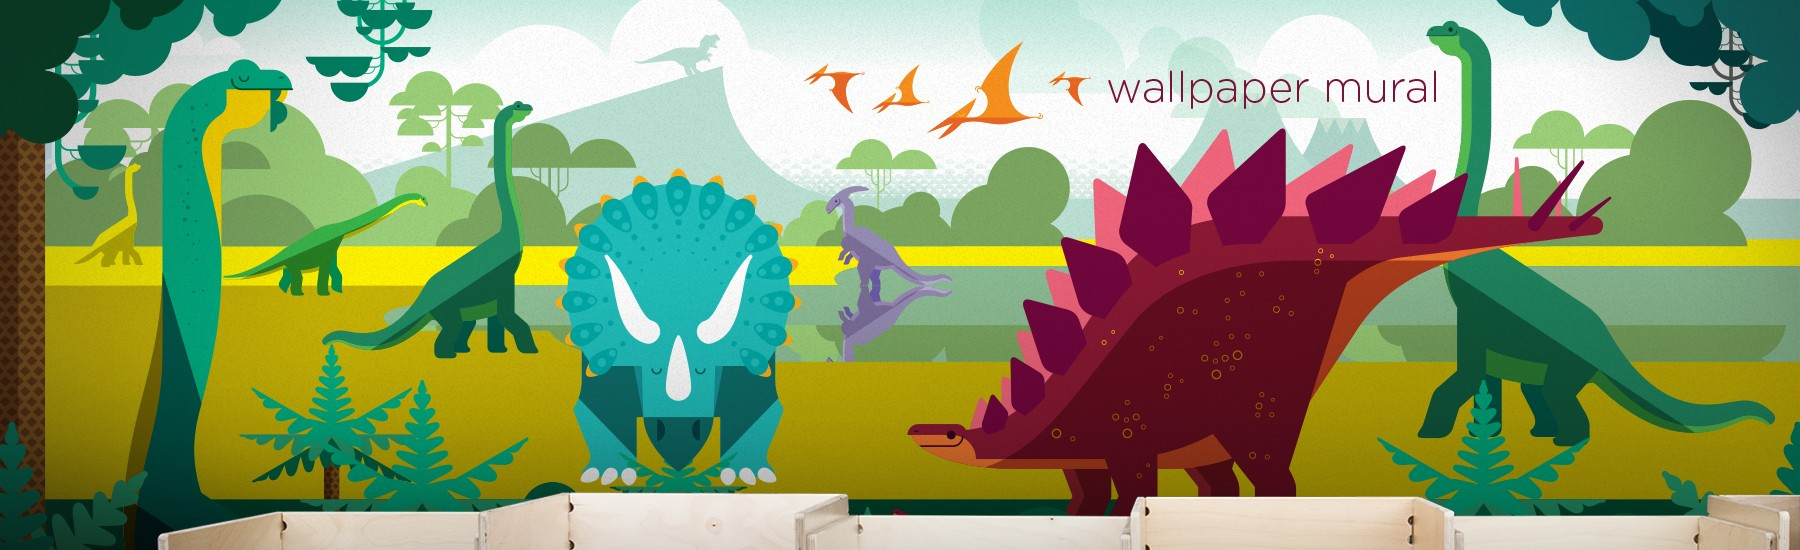 dinosaur wallpaper mural, dinosaur poster XXL for kids room by E-Glue Design